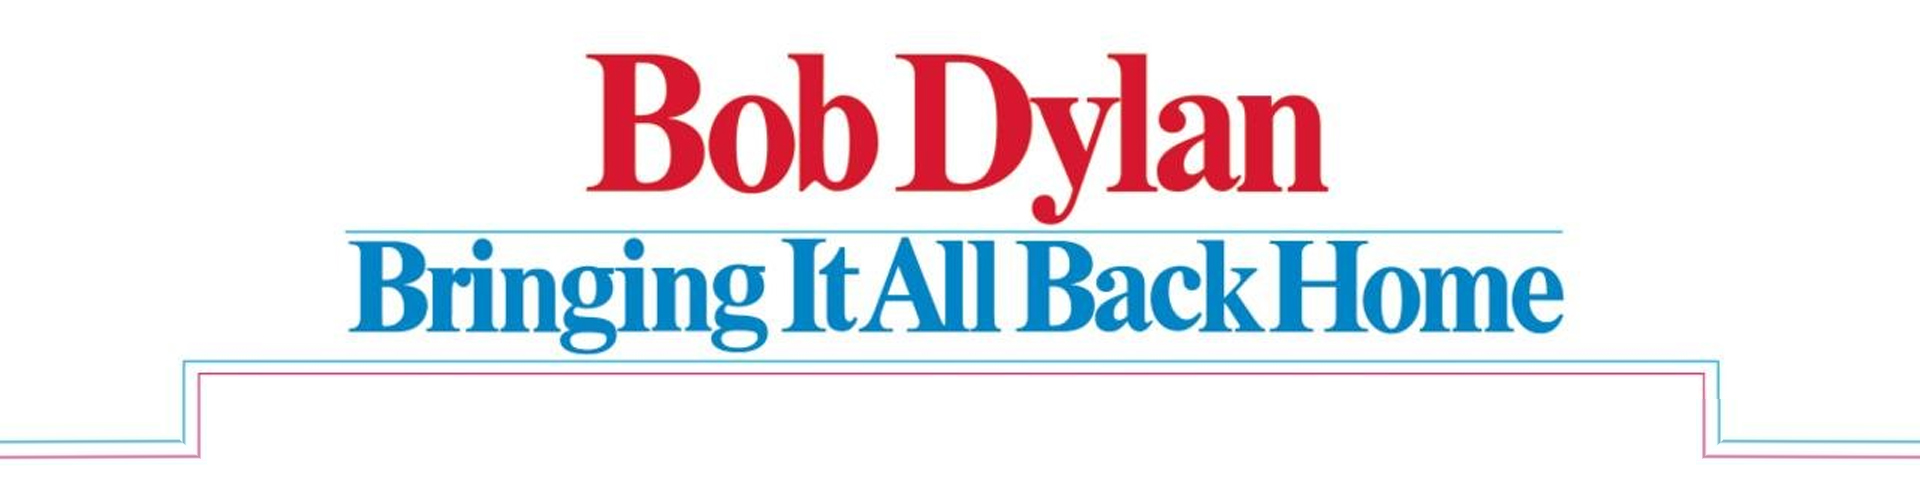 dylan back home